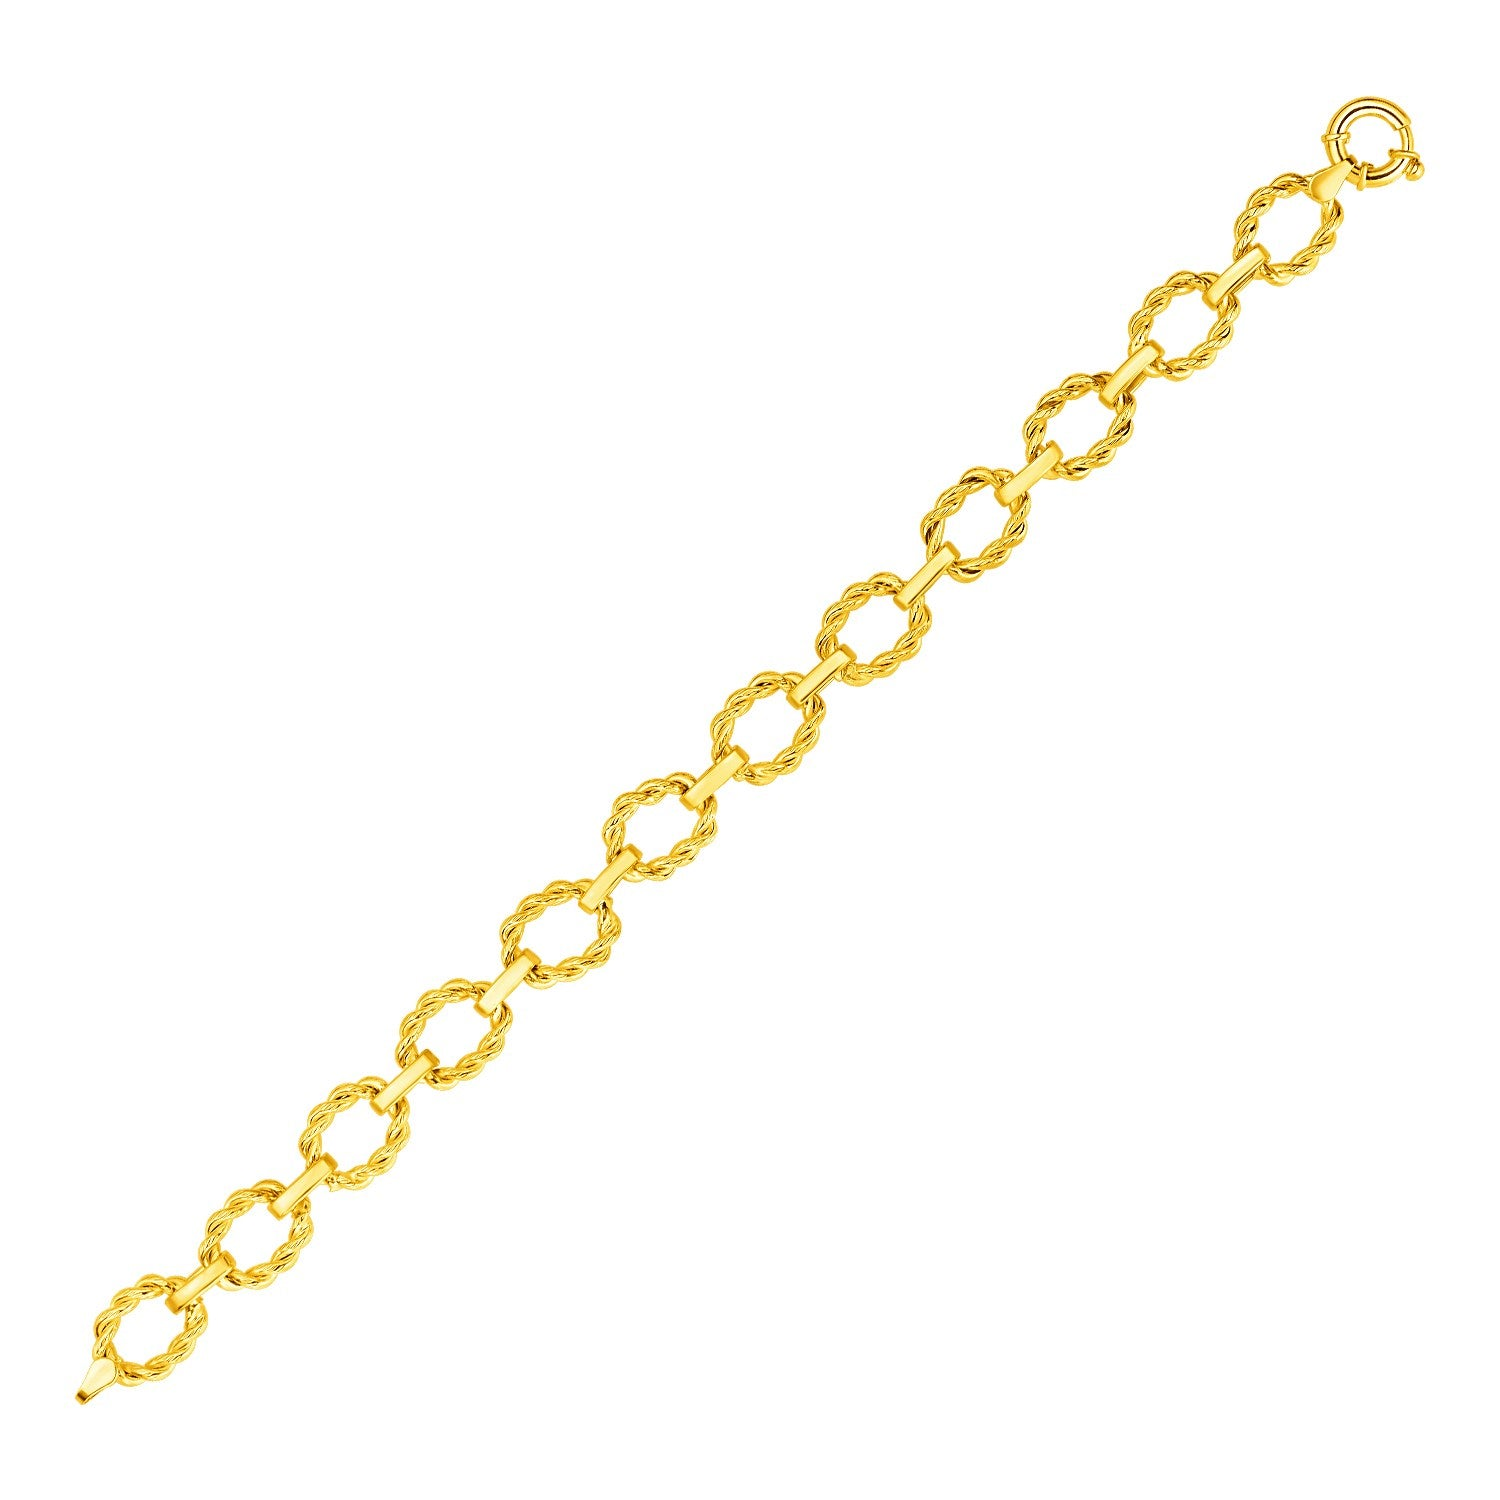 14k Yellow Gold Twisted Oval Link Bracelet